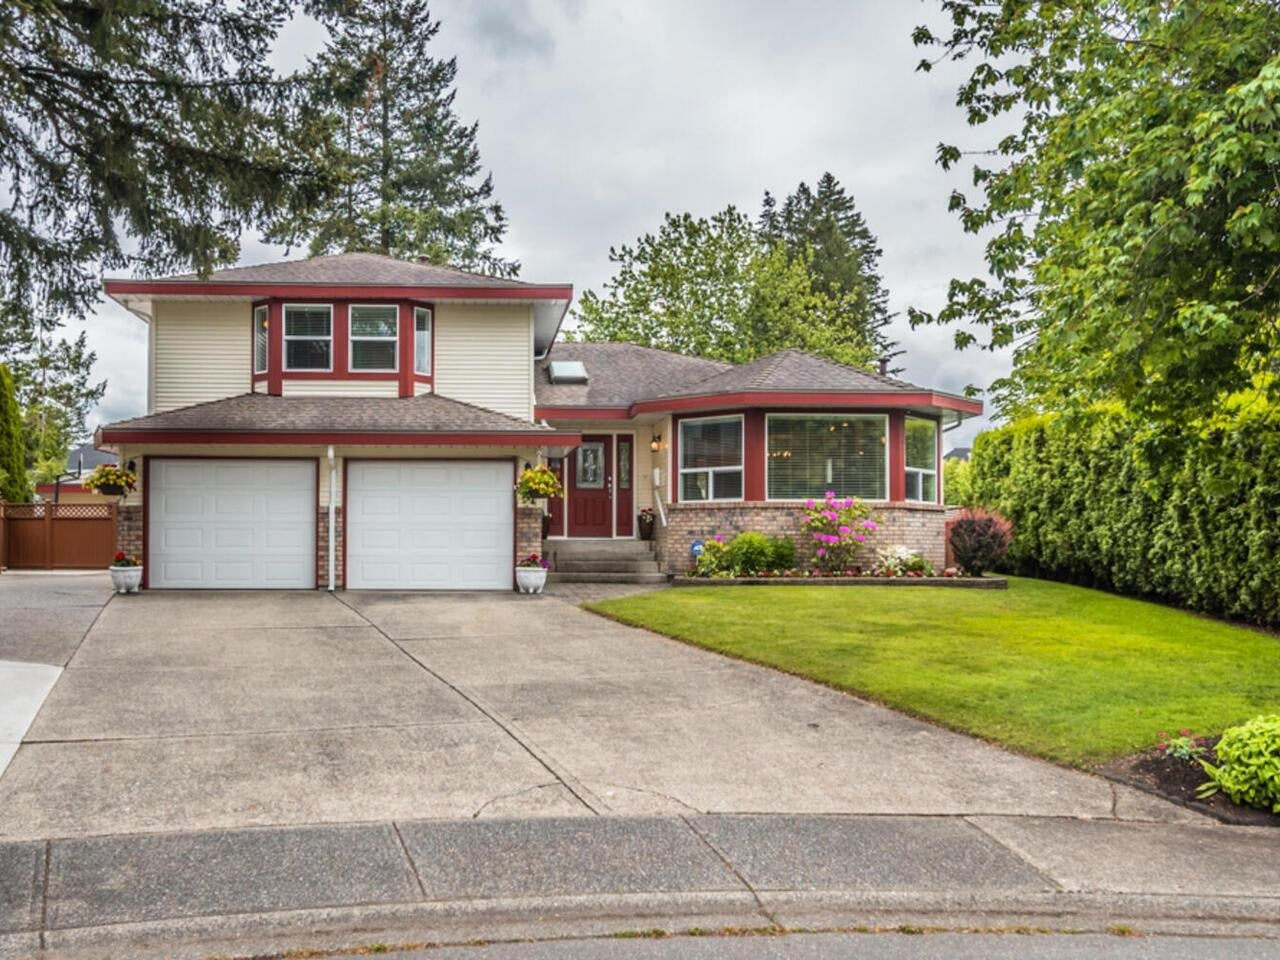 3394 198A STREET - Brookswood Langley House/Single Family for sale, 3 Bedrooms (R2606836)